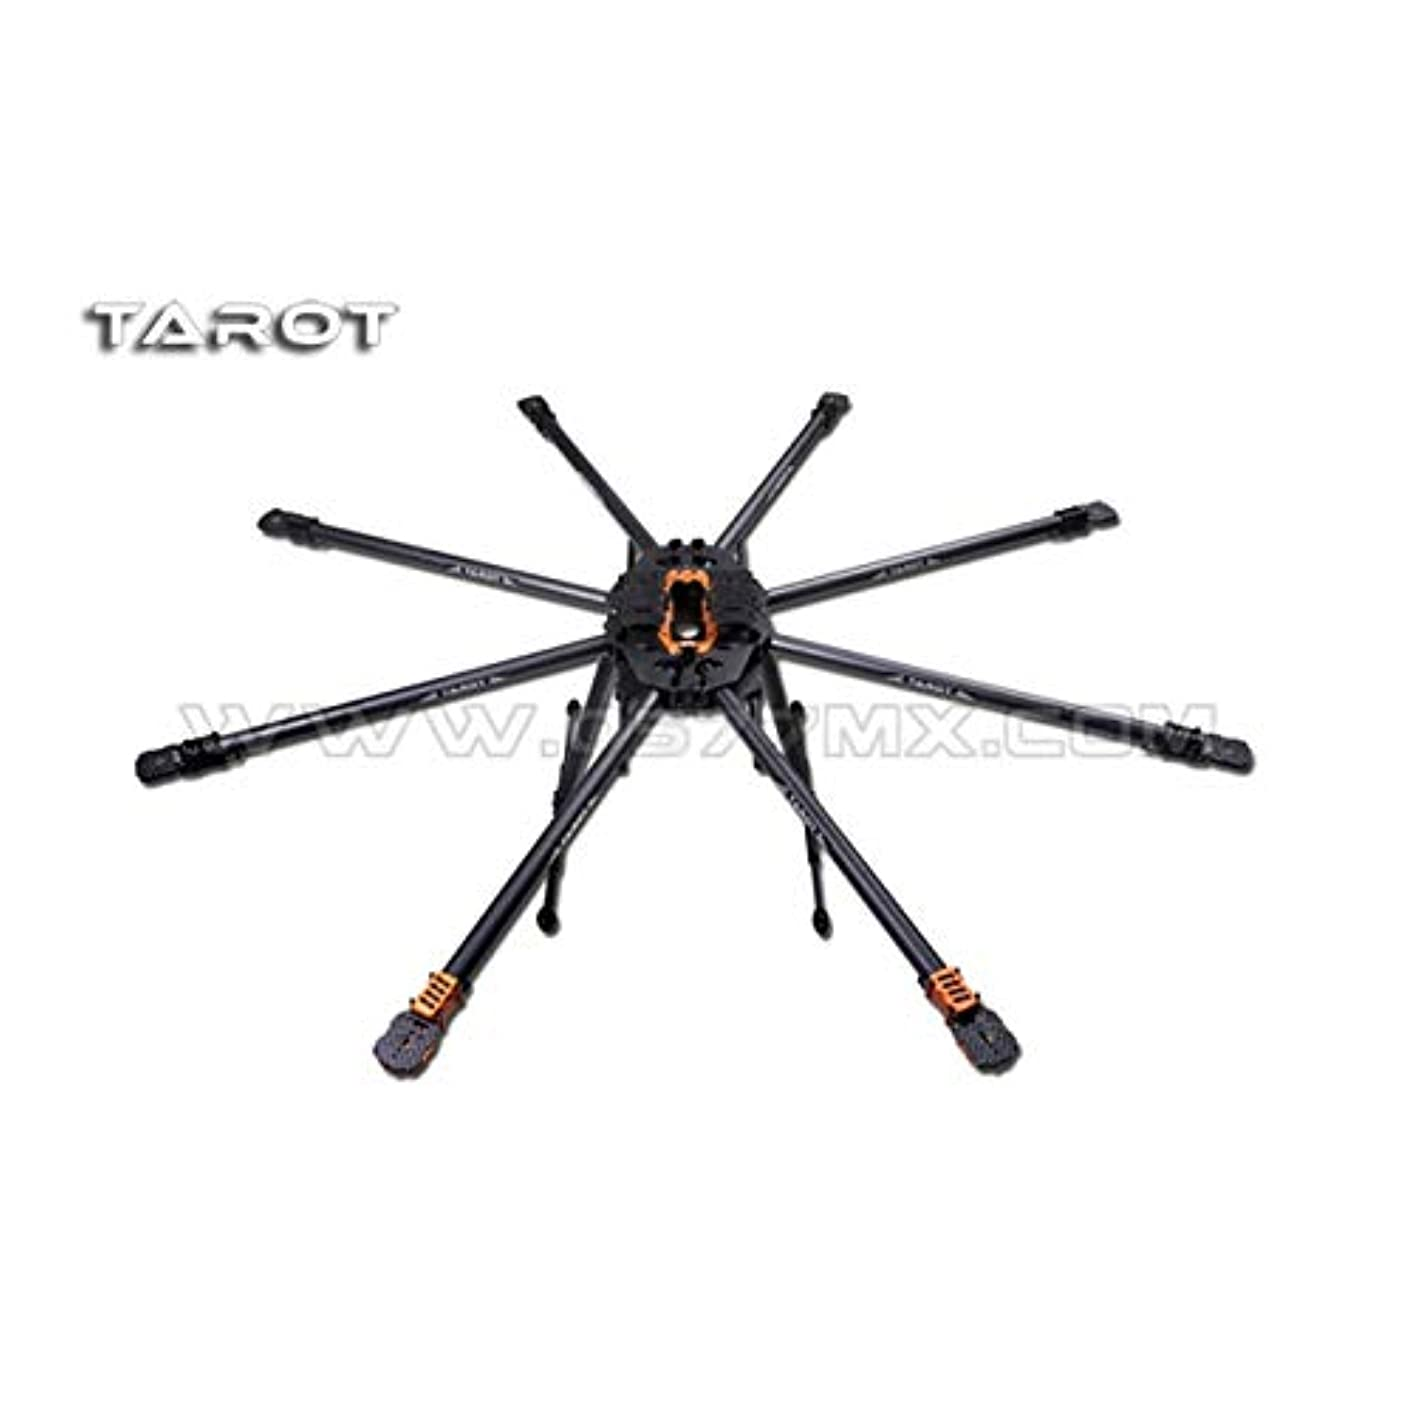 Yoton Accessories RC Multi Rotor Helicopter Tarot T15 Pure 3K Carbon Folding Type Octa Copter Main Frame kit FPV TL15T00